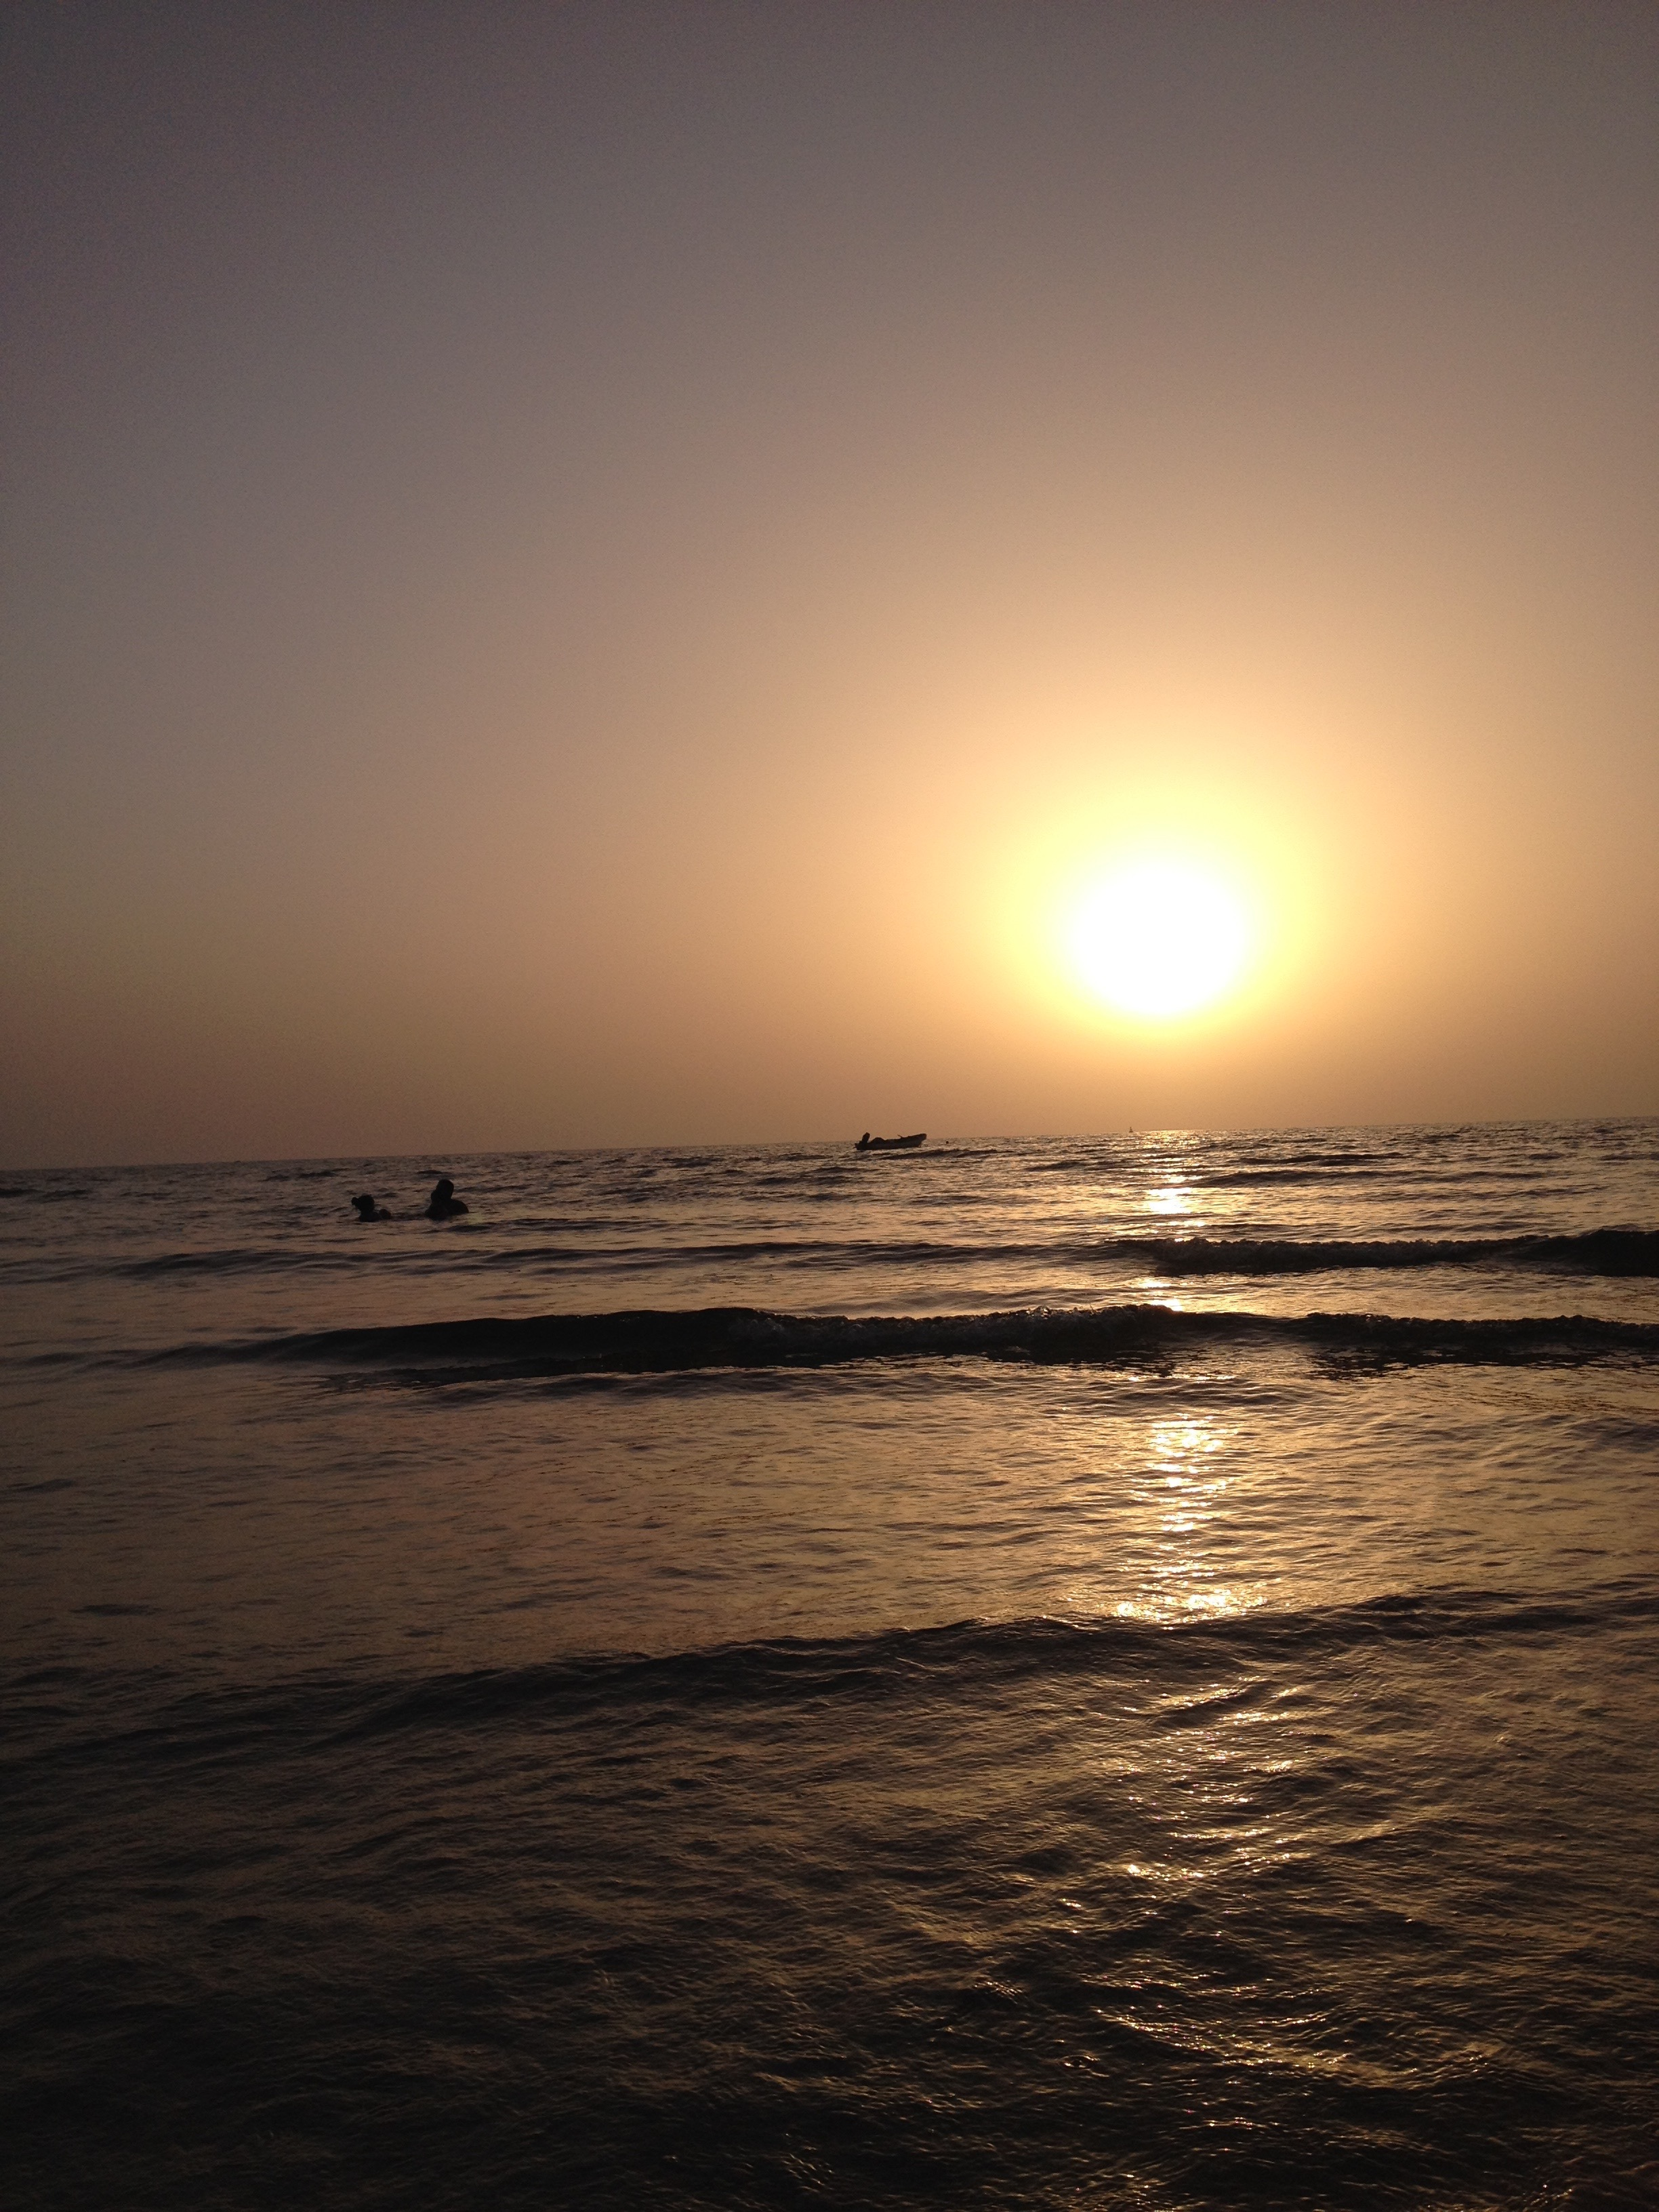 the sea view in front of our home in Dubai was something we treasured to have experienced, every day.